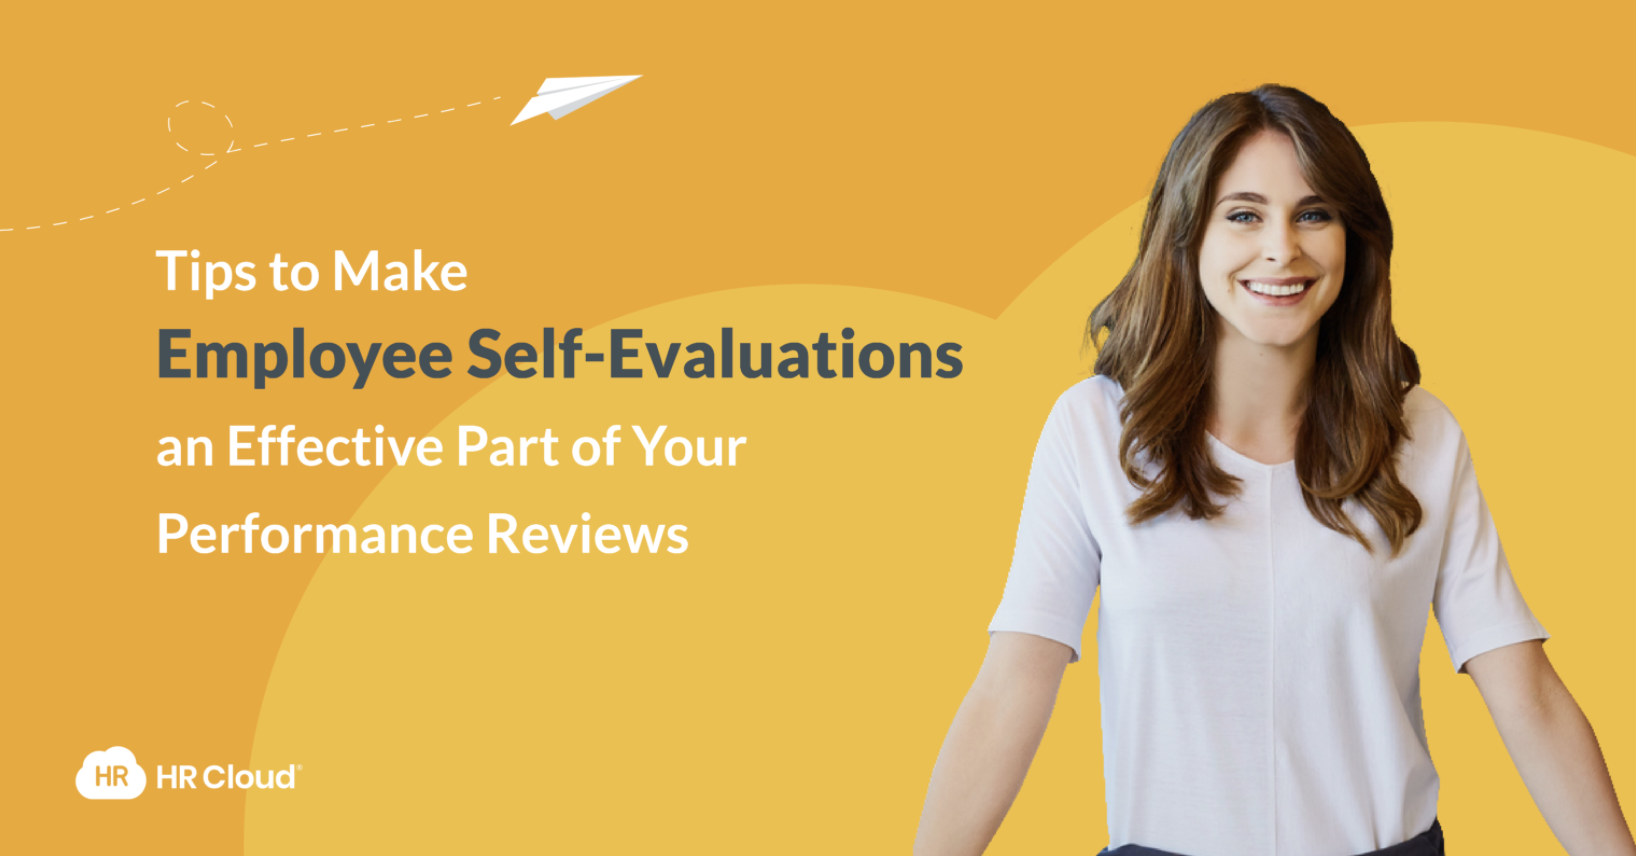 Tips to Make Employee Self-Evaluations an Effective Part of Your Performance Reviews